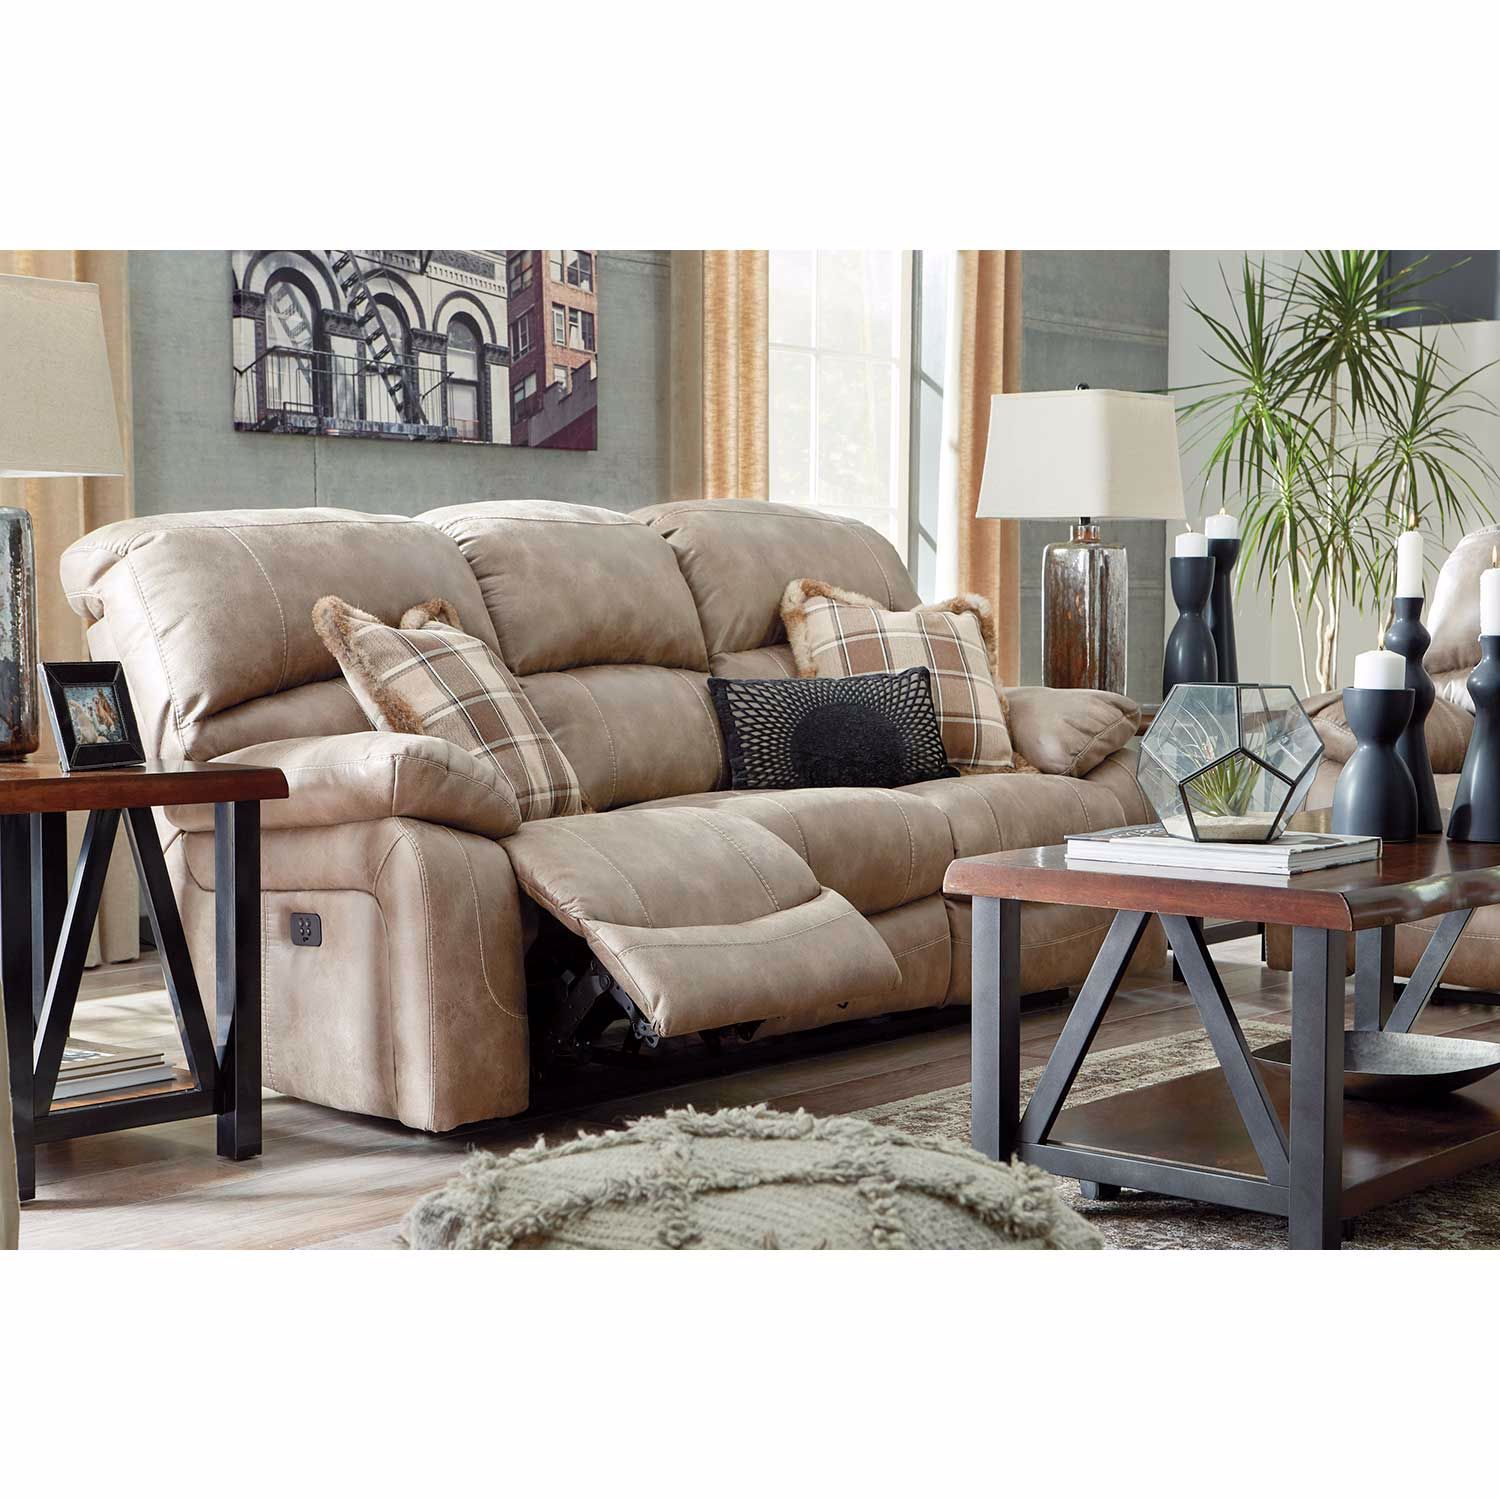 Picture of Dunwell Driftwood Power Reclining Sofa with Adjustable Headrest